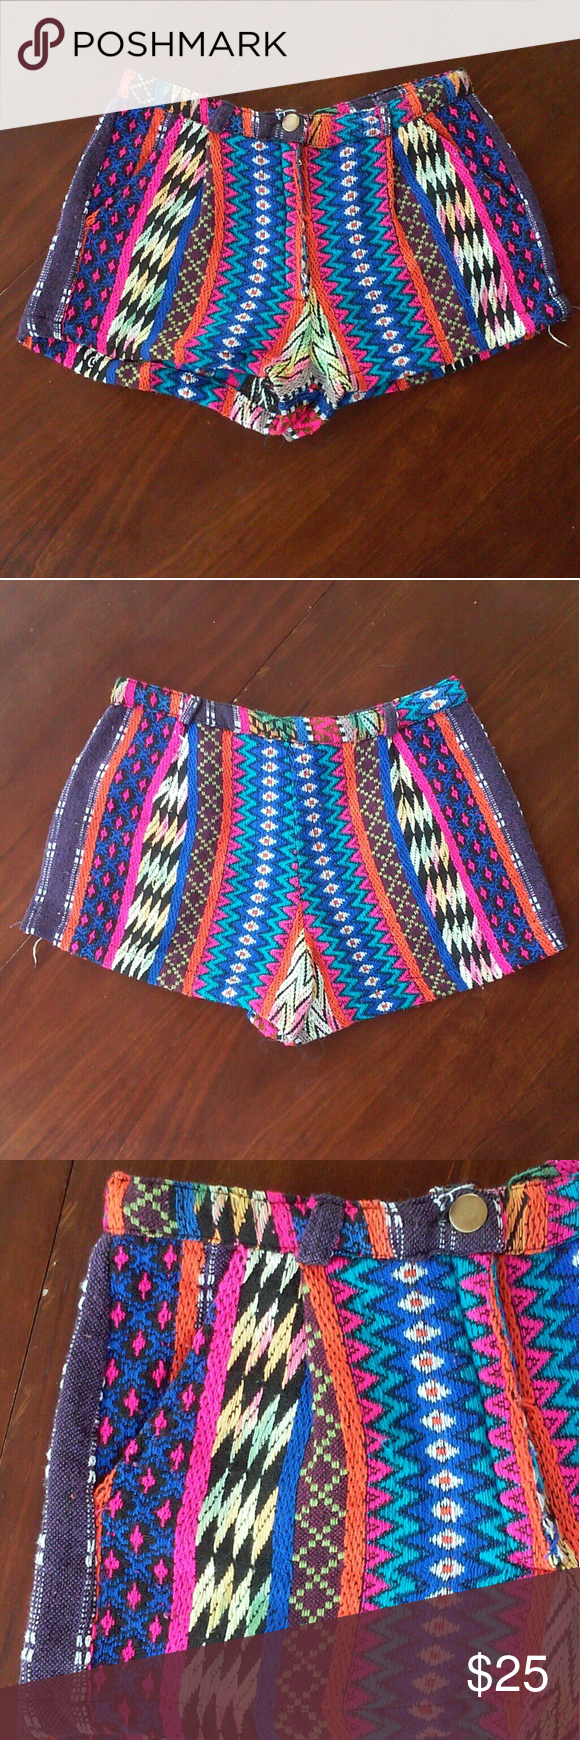 Angie tribal knitted shorts size S | Pattern shorts, Tribal patterns ...